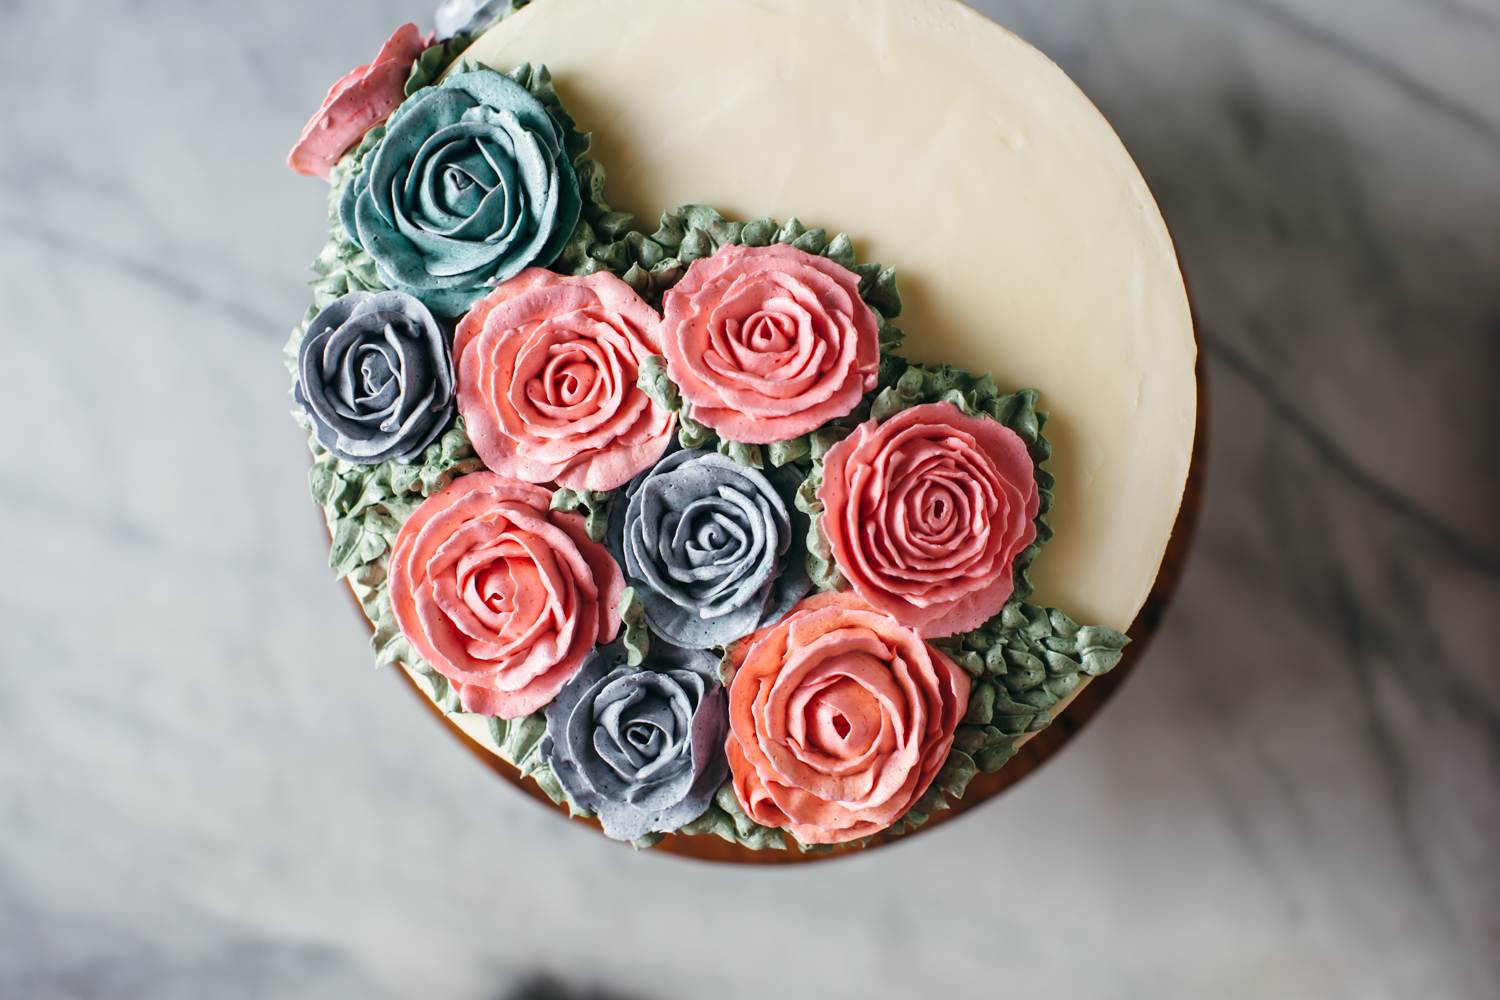 best coconut rose cake-3.jpg